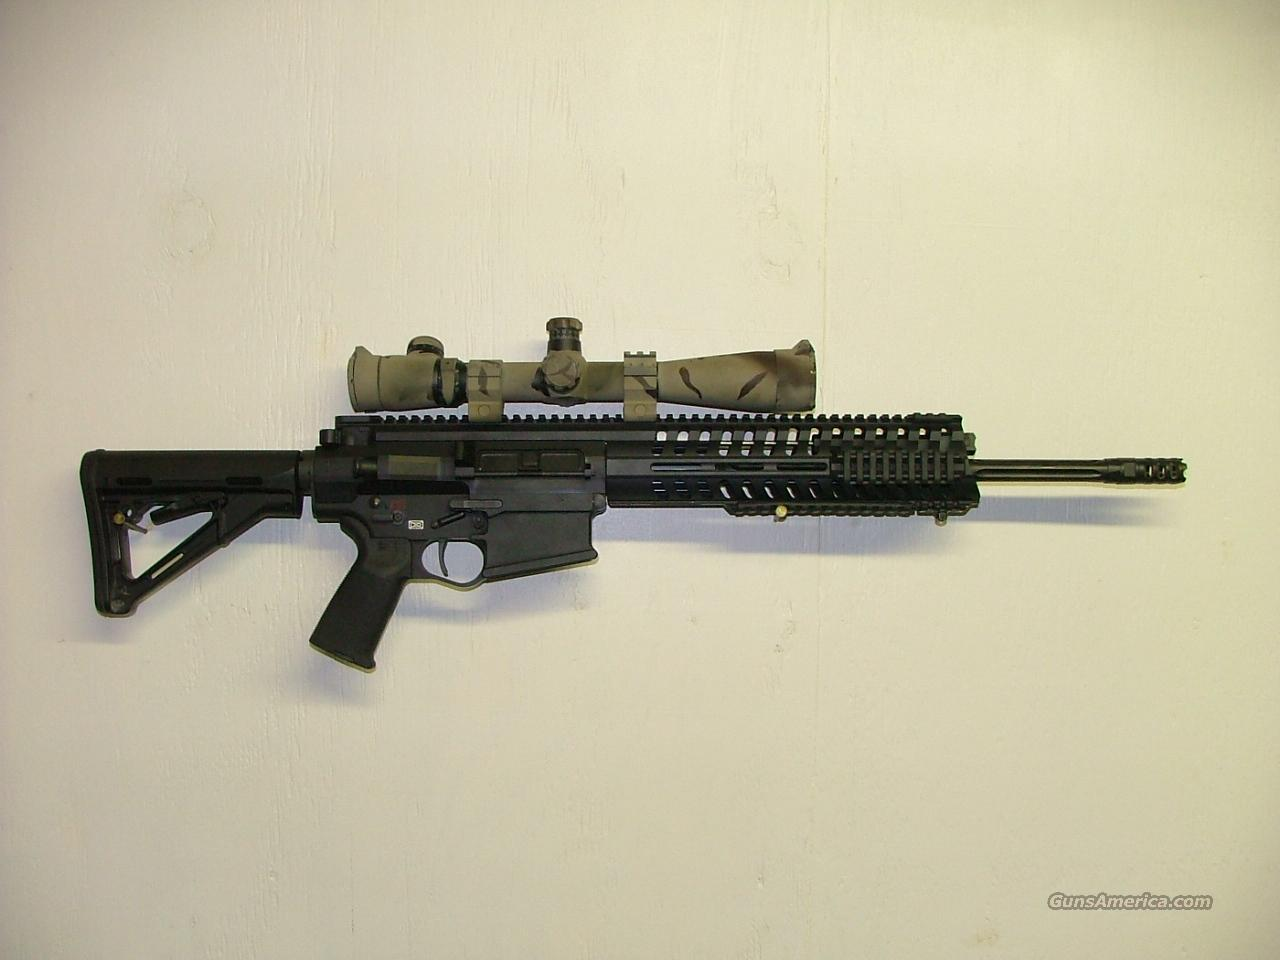 POF .308  Guns > Rifles > AR-15 Rifles - Small Manufacturers > Complete Rifle